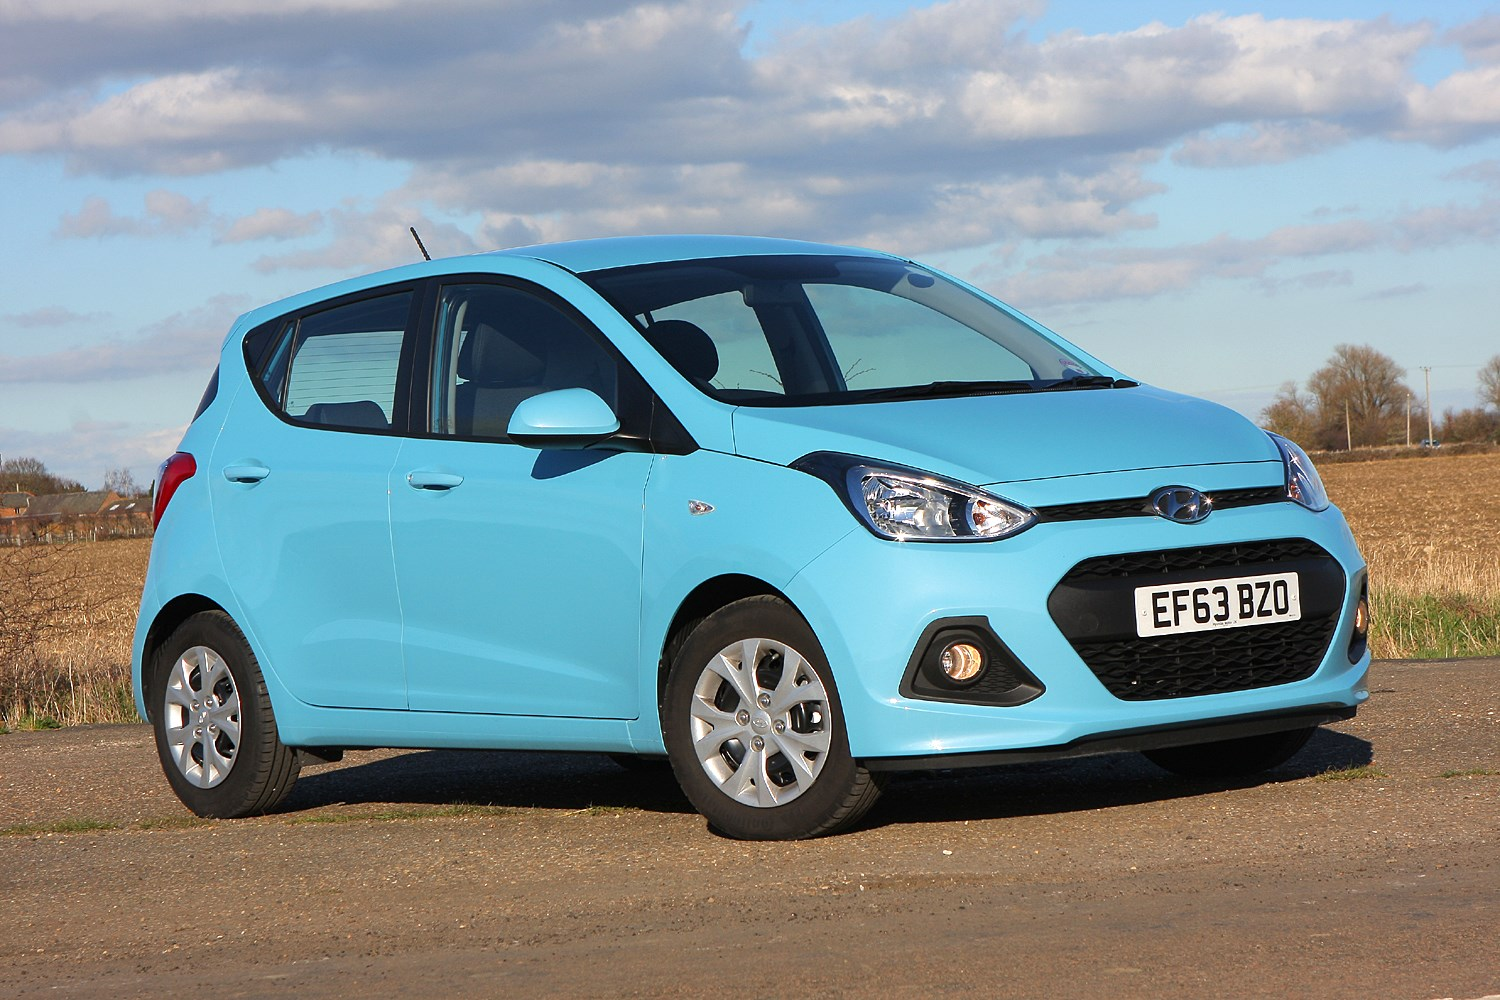 Hyundai i10 Hatchback (2014 - ) Photos | Parkers